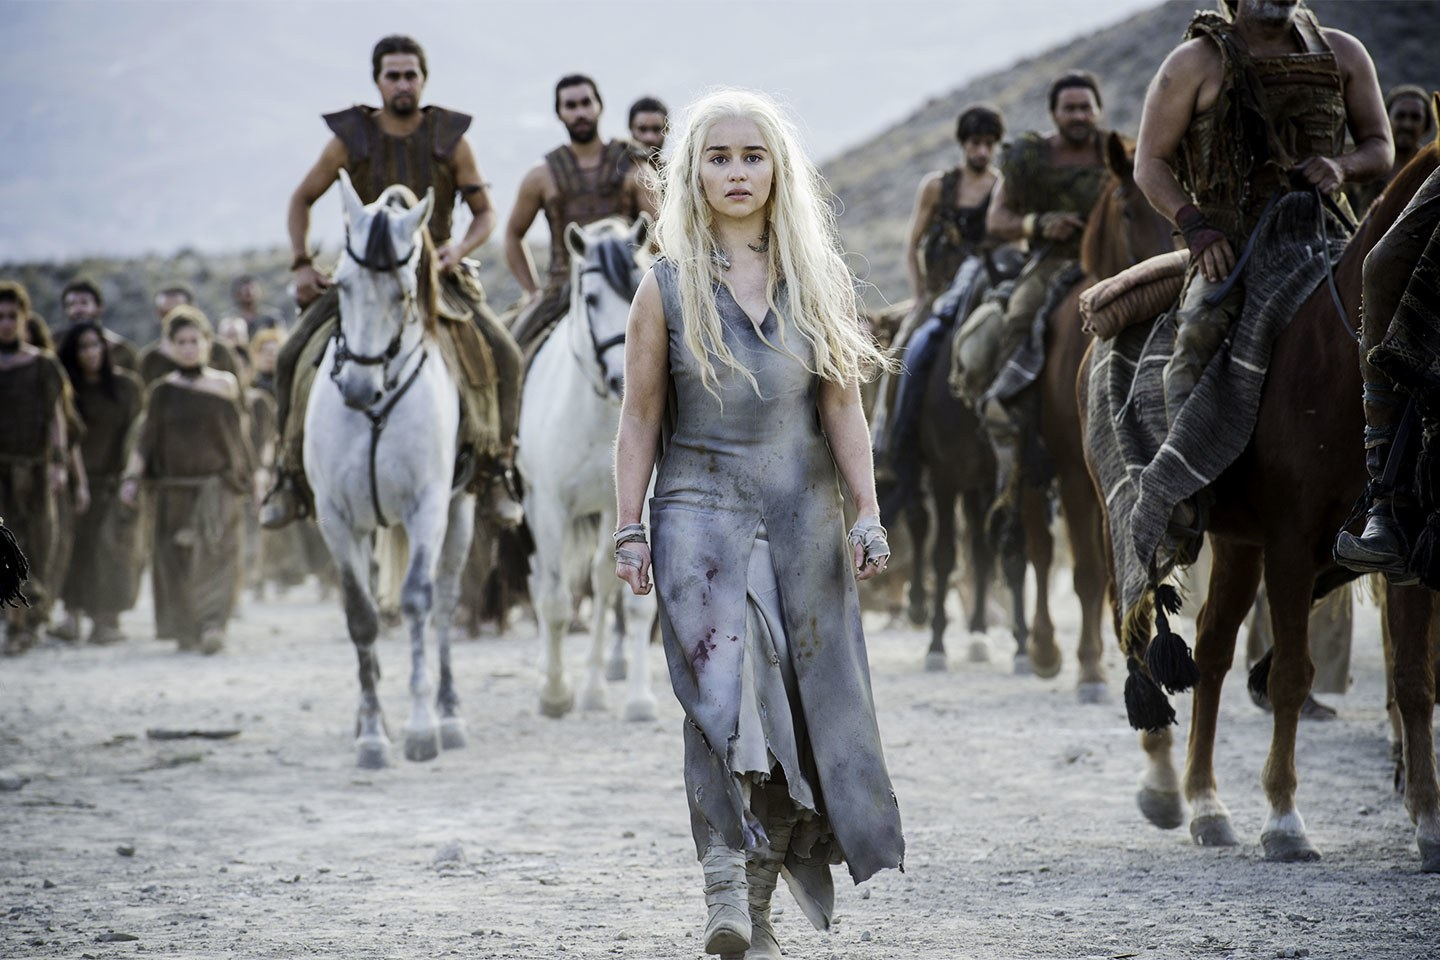 Iranian charged in Game Of Thrones hack, extortion scheme